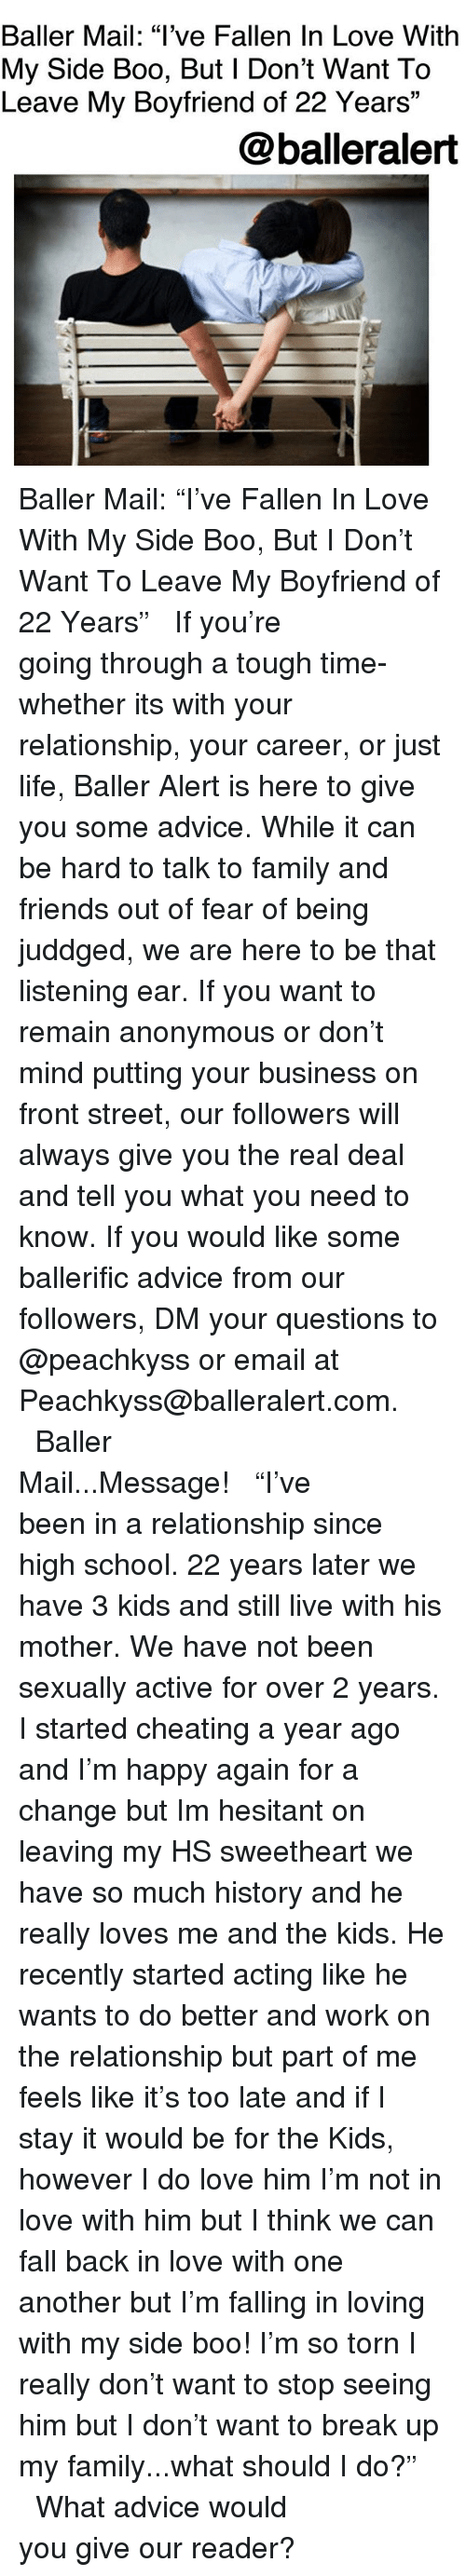 """baller alert: Baller Mail: """"l've Fallen In Love With  My Side Boo, But l Don't Want To  Leave My Boyfriend of 22 Years""""  13  @balleralert Baller Mail: """"I've Fallen In Love With My Side Boo, But I Don't Want To Leave My Boyfriend of 22 Years"""" ⠀⠀⠀⠀⠀⠀⠀ ⠀⠀⠀⠀⠀⠀⠀ If you're going through a tough time-whether its with your relationship, your career, or just life, Baller Alert is here to give you some advice. While it can be hard to talk to family and friends out of fear of being juddged, we are here to be that listening ear. If you want to remain anonymous or don't mind putting your business on front street, our followers will always give you the real deal and tell you what you need to know. If you would like some ballerific advice from our followers, DM your questions to @peachkyss or email at Peachkyss@balleralert.com. ⠀⠀⠀⠀⠀⠀⠀ ⠀⠀⠀⠀⠀⠀⠀ Baller Mail...Message! ⠀⠀⠀⠀⠀⠀⠀ ⠀⠀⠀⠀⠀⠀⠀ """"I've been in a relationship since high school. 22 years later we have 3 kids and still live with his mother. We have not been sexually active for over 2 years. I️ started cheating a year ago and I'm happy again for a change but I️m hesitant on leaving my HS sweetheart we have so much history and he really loves me and the kids. He recently started acting like he wants to do better and work on the relationship but part of me feels like it's too late and if I️ stay it would be for the Kids, however I️ do love him I'm not in love with him but I️ think we can fall back in love with one another but I'm falling in loving with my side boo! I'm so torn I️ really don't want to stop seeing him but I️ don't want to break up my family...what should I do?"""" ⠀⠀⠀⠀⠀⠀⠀ ⠀⠀⠀⠀⠀⠀⠀ What advice would you give our reader?"""